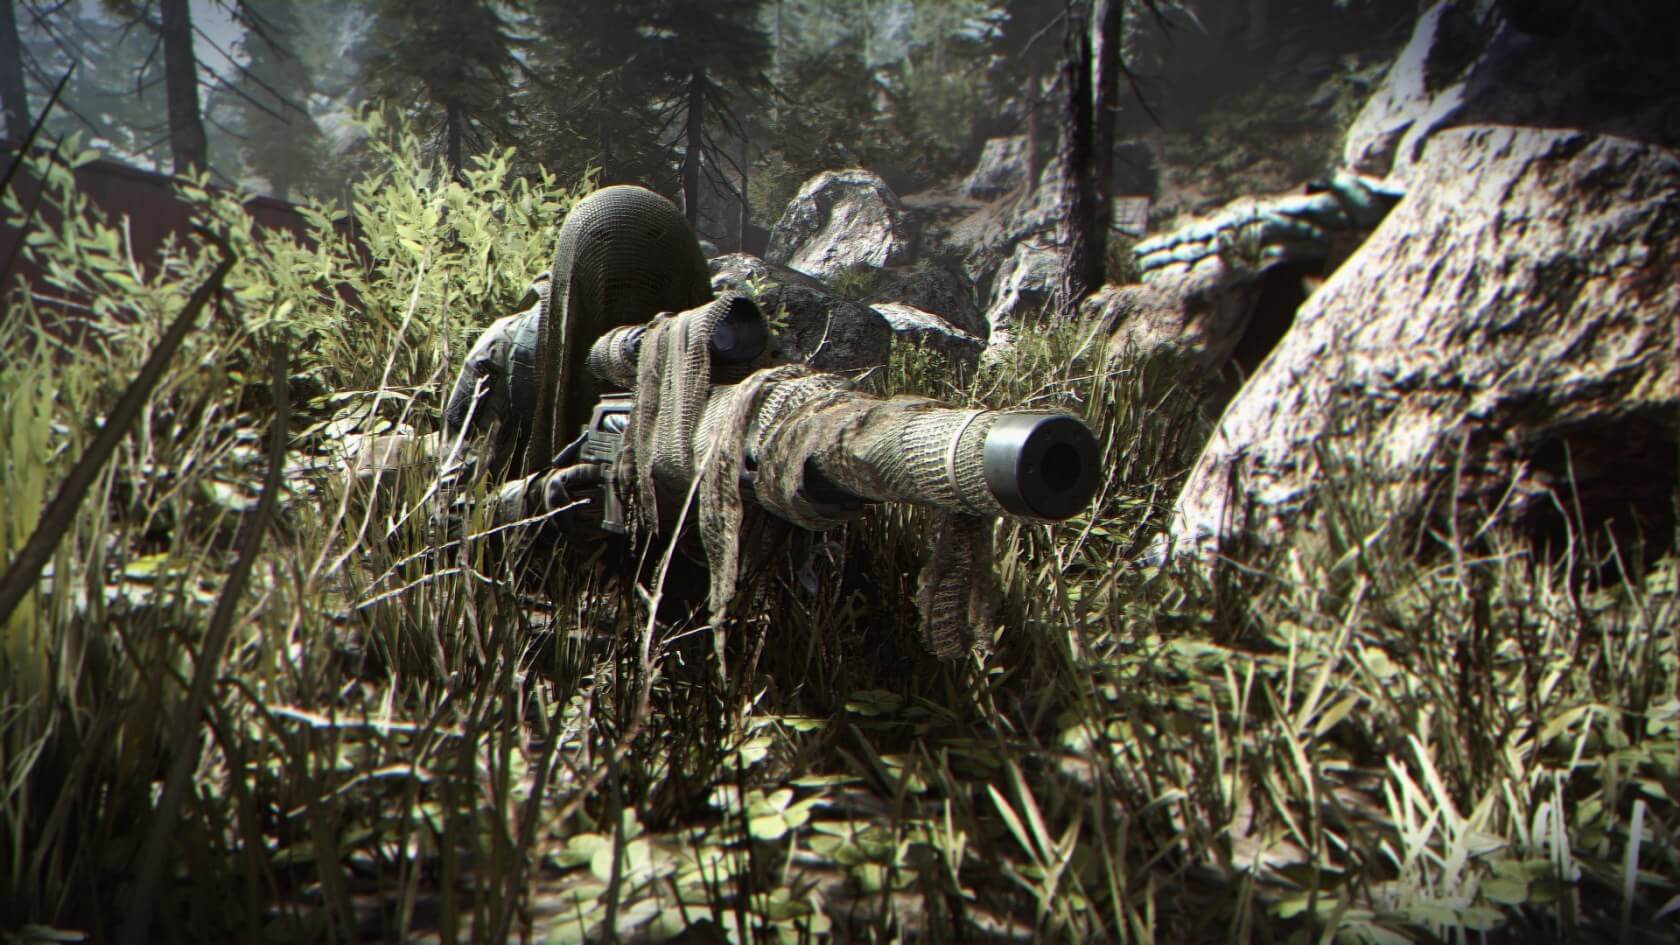 Call of Duty: Modern Warfare will receive a post-launch 'Battle Pass' system instead of loot boxes